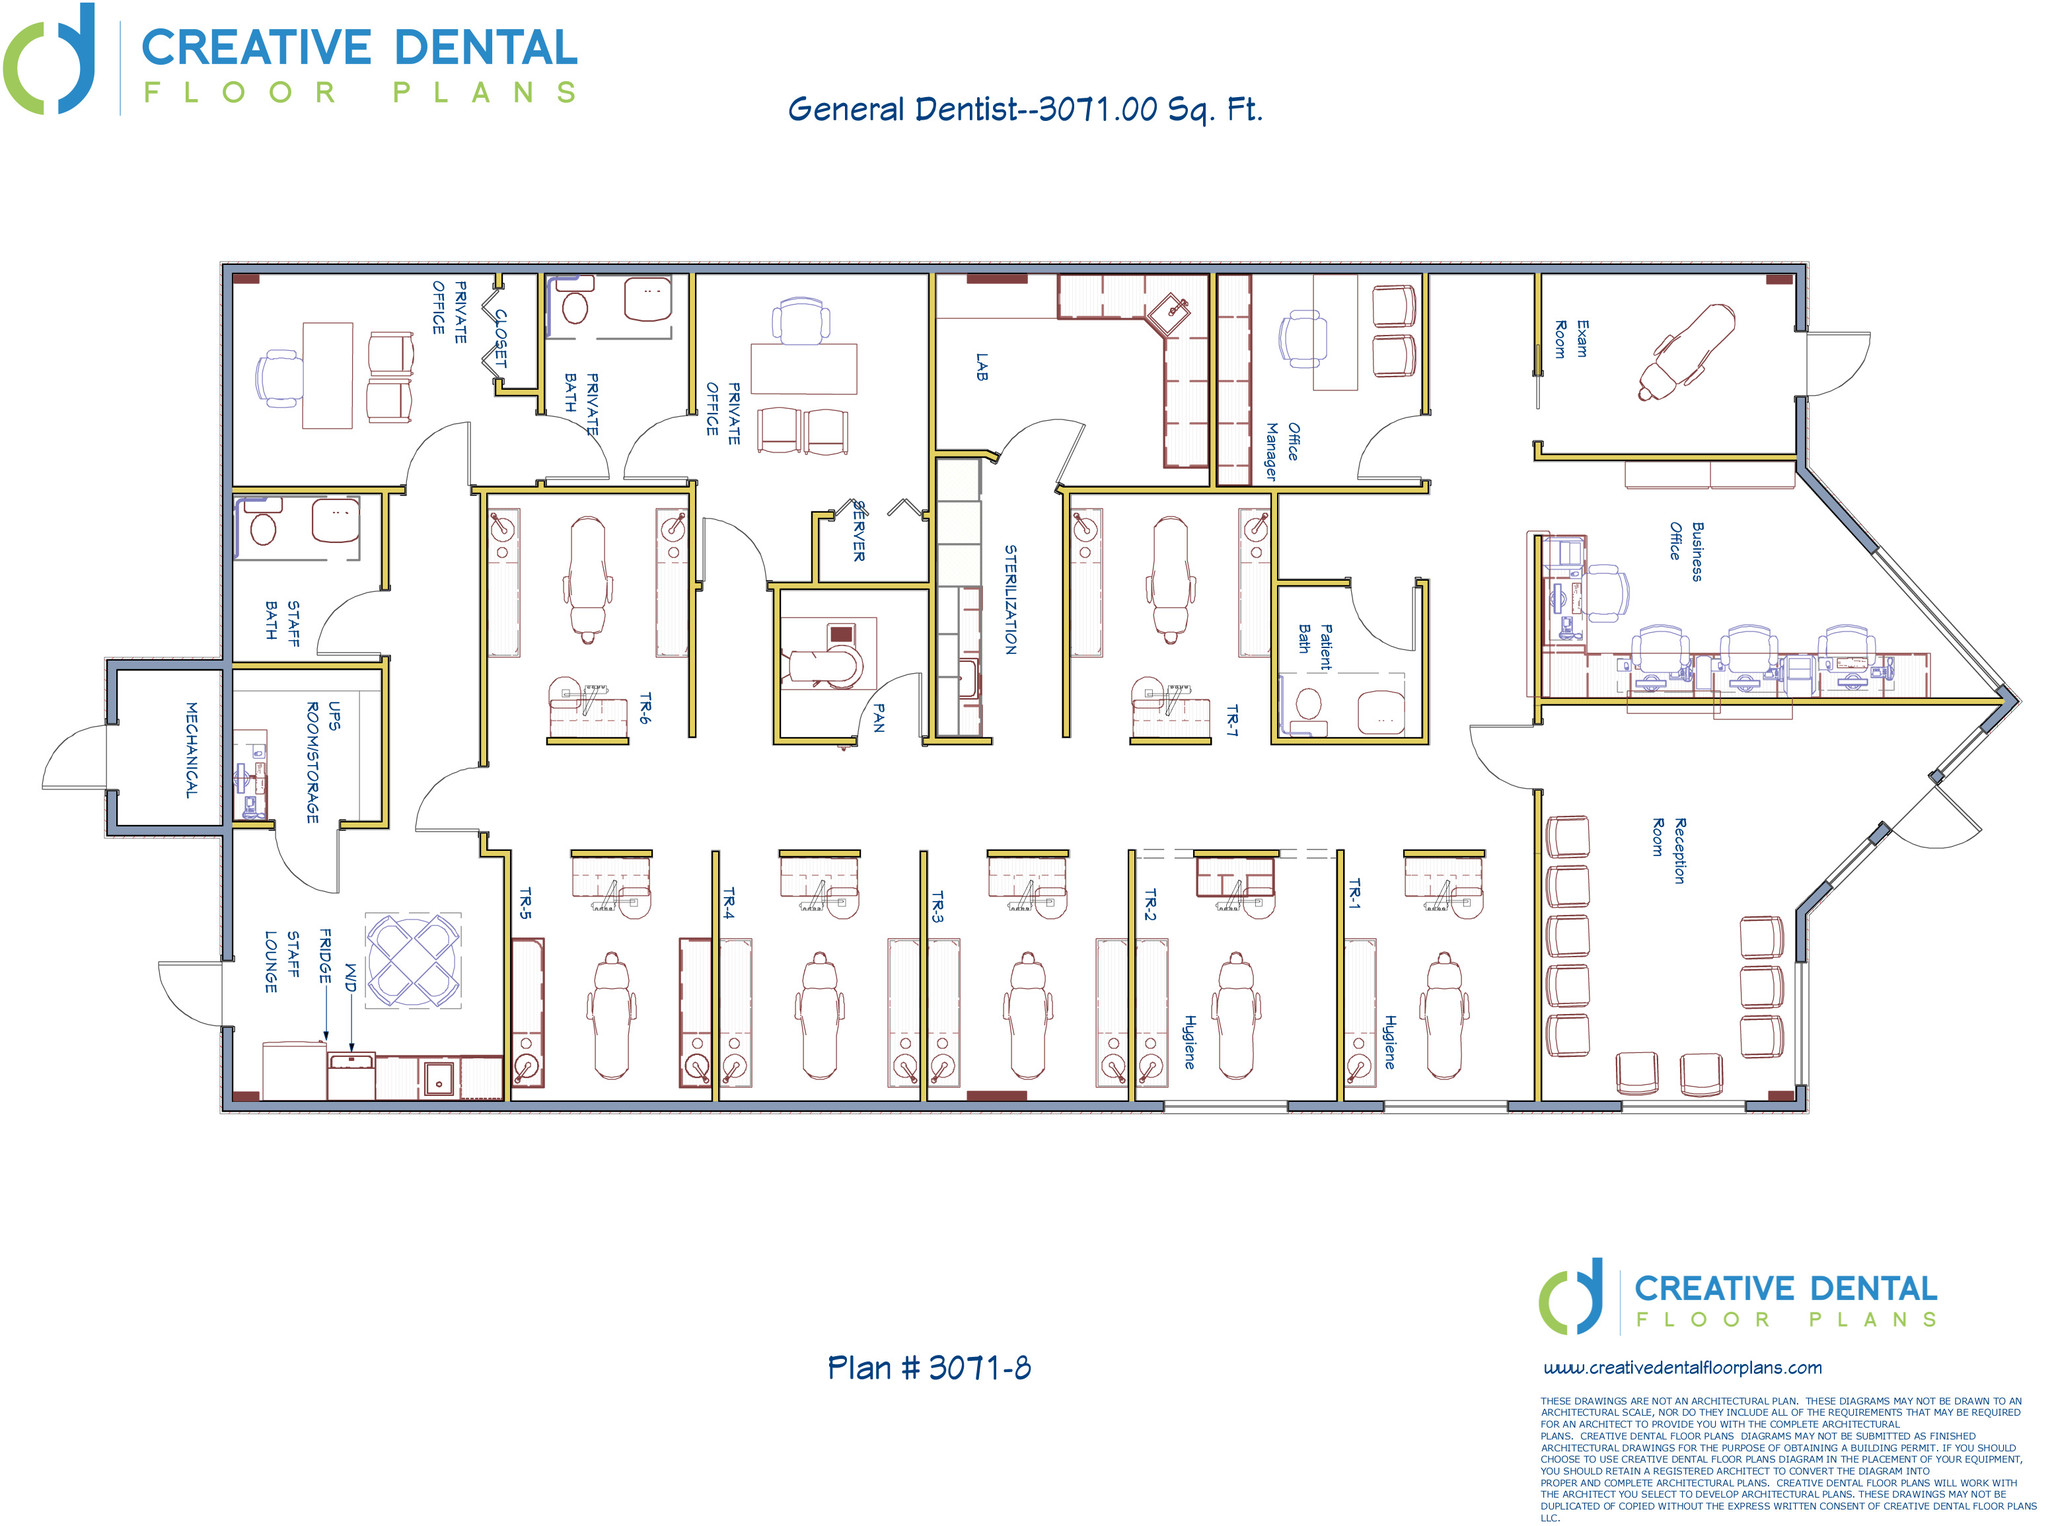 Creative dental floor plans strip mall floor plans for Office design floor plan